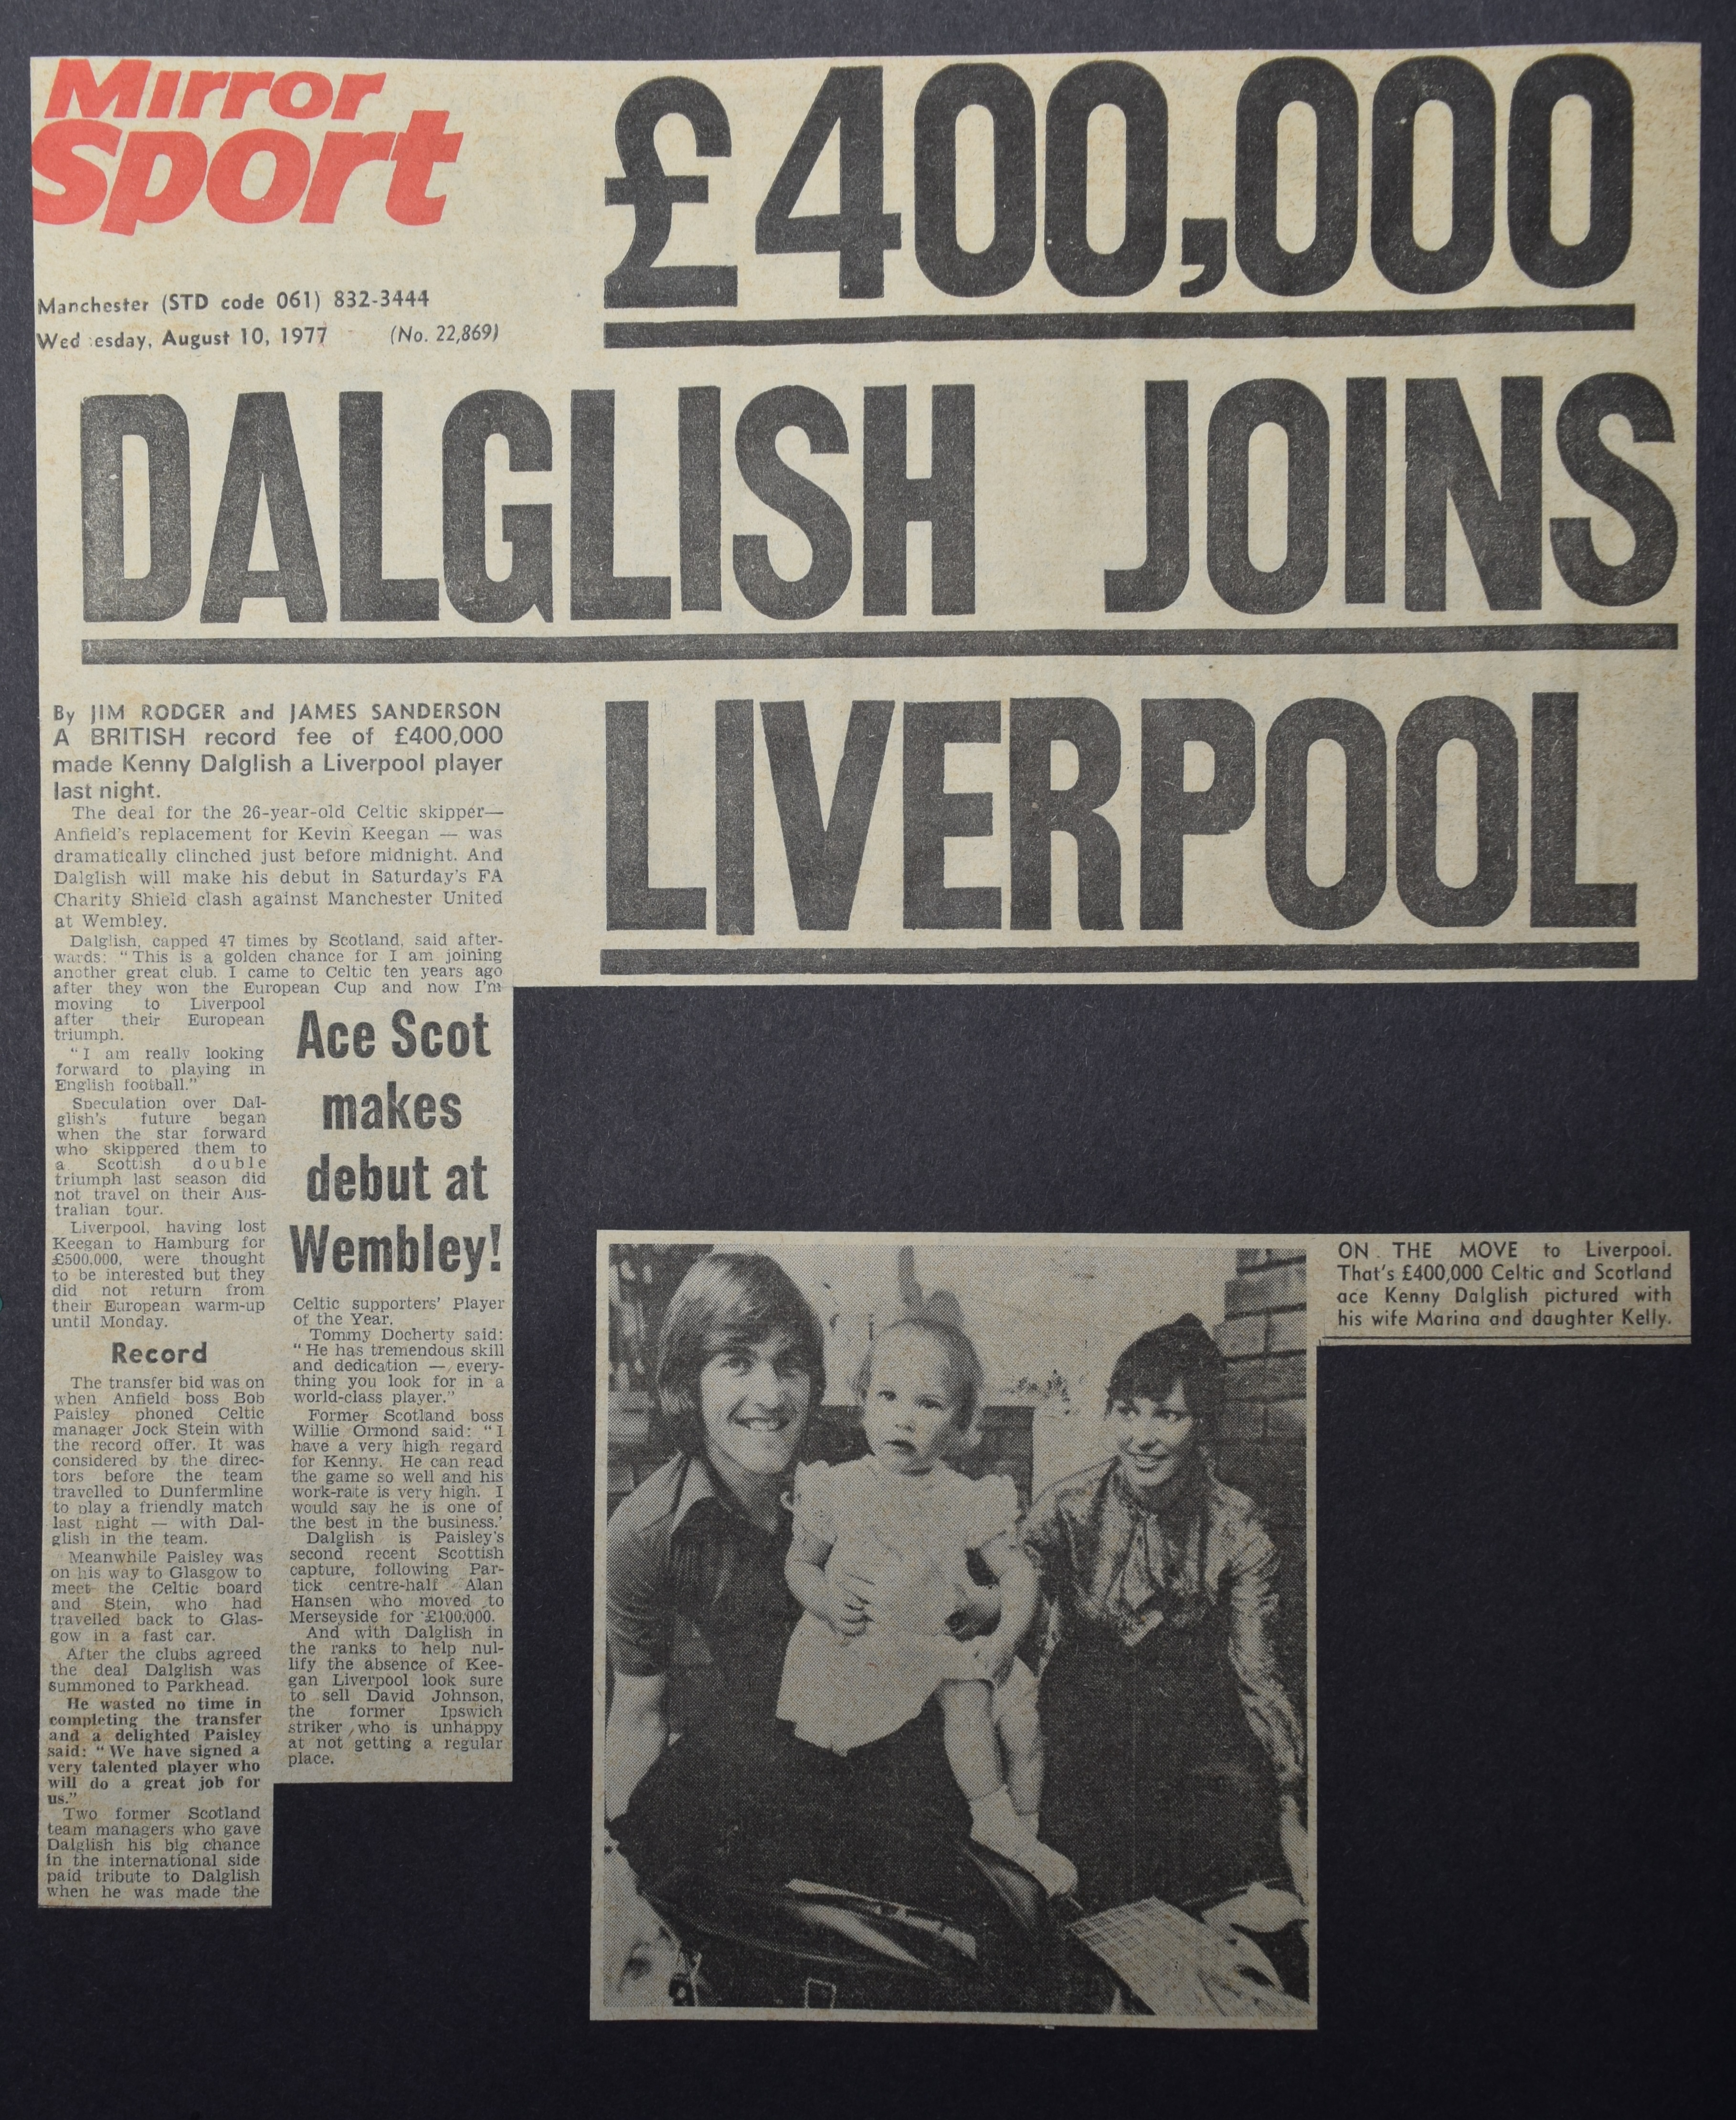 Daily Mirror - 10 August 1977